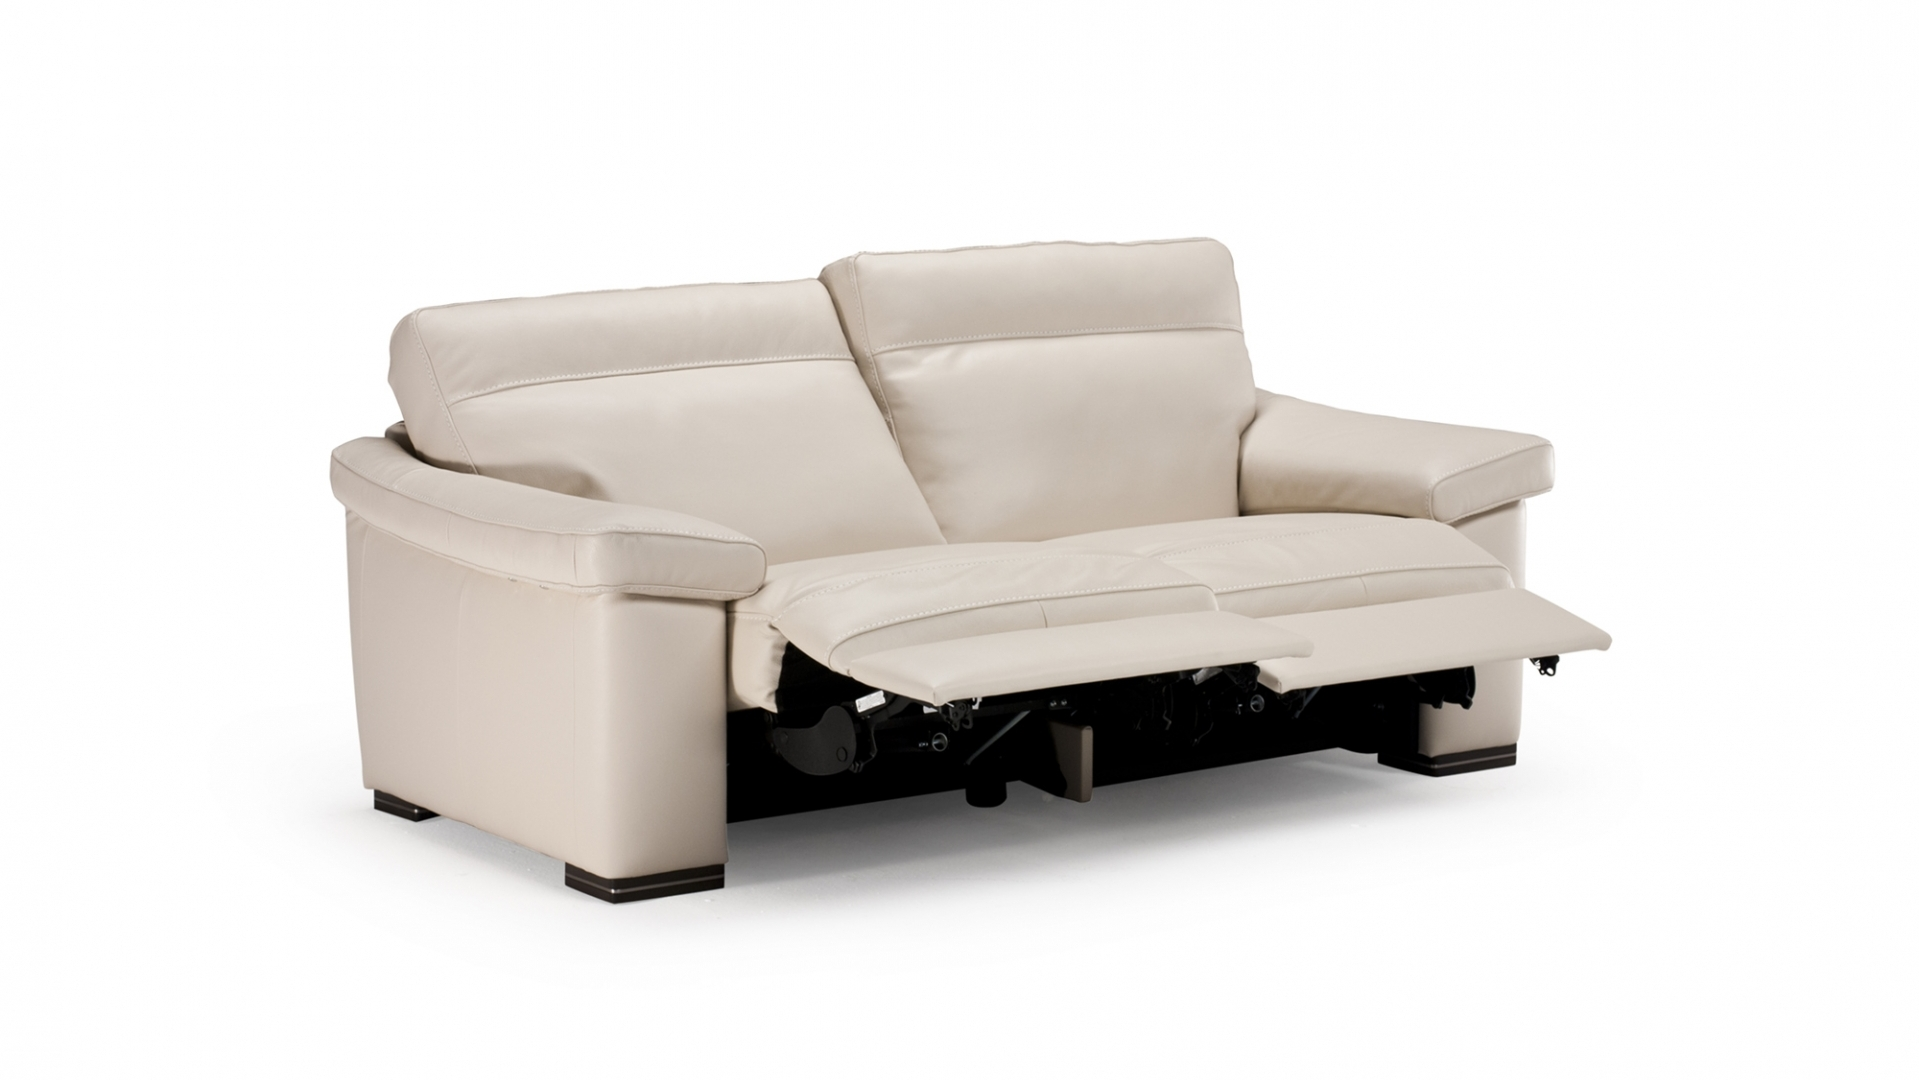 products galaxy sofa leather collection recliner natuzzi en italia by b